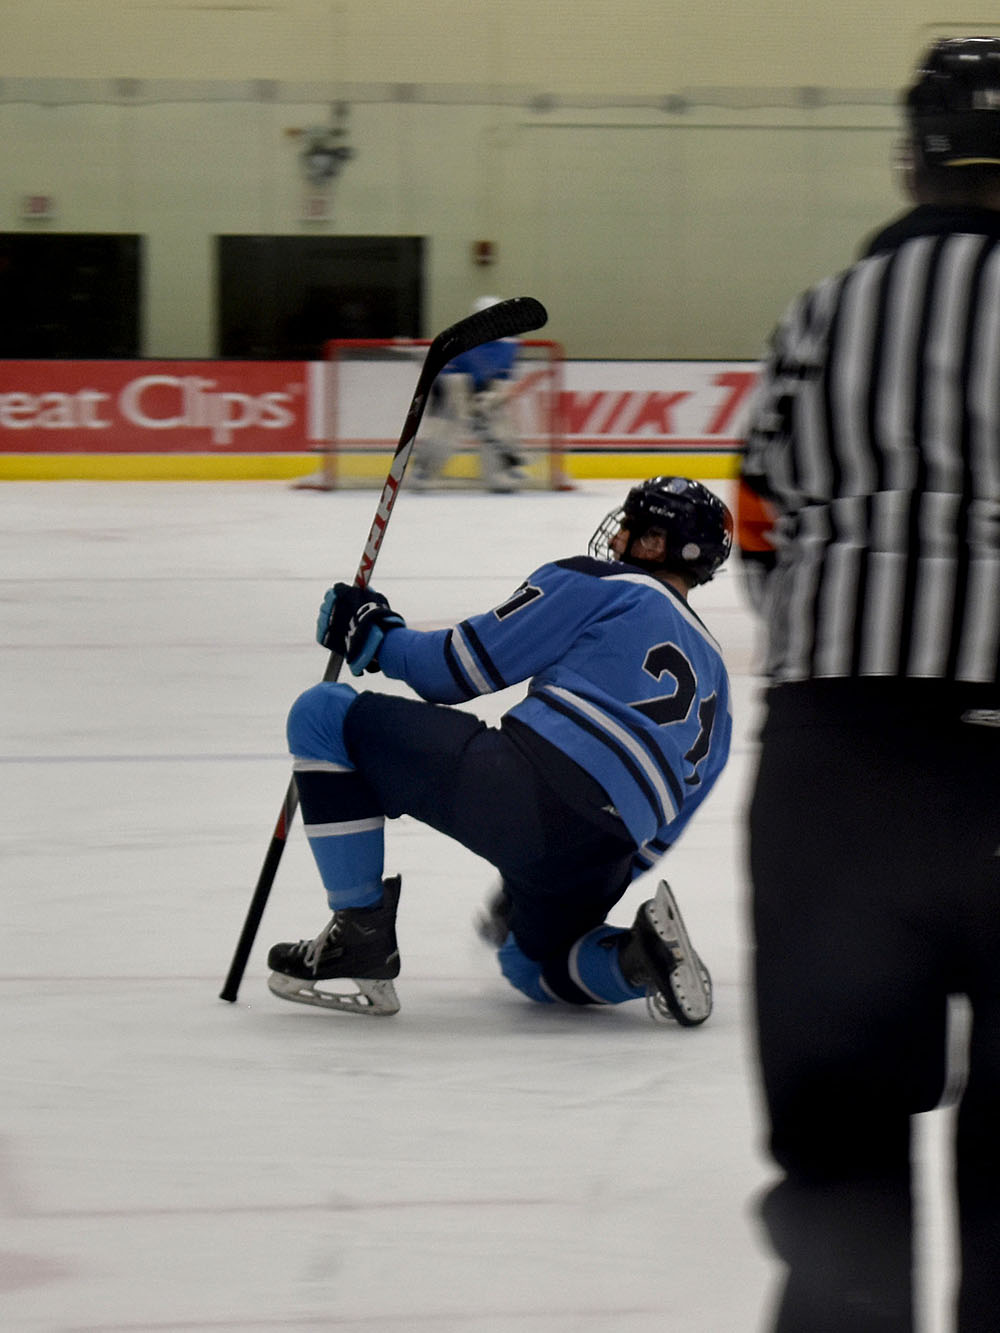 Junior Trevor Dalbec celebrates after his goal at 14:41 in the second period on Feb. 20 at Wessman Arena. Superior beat New Richmond 4-3 in double overtime and will move on to play Hudson in the section final game.